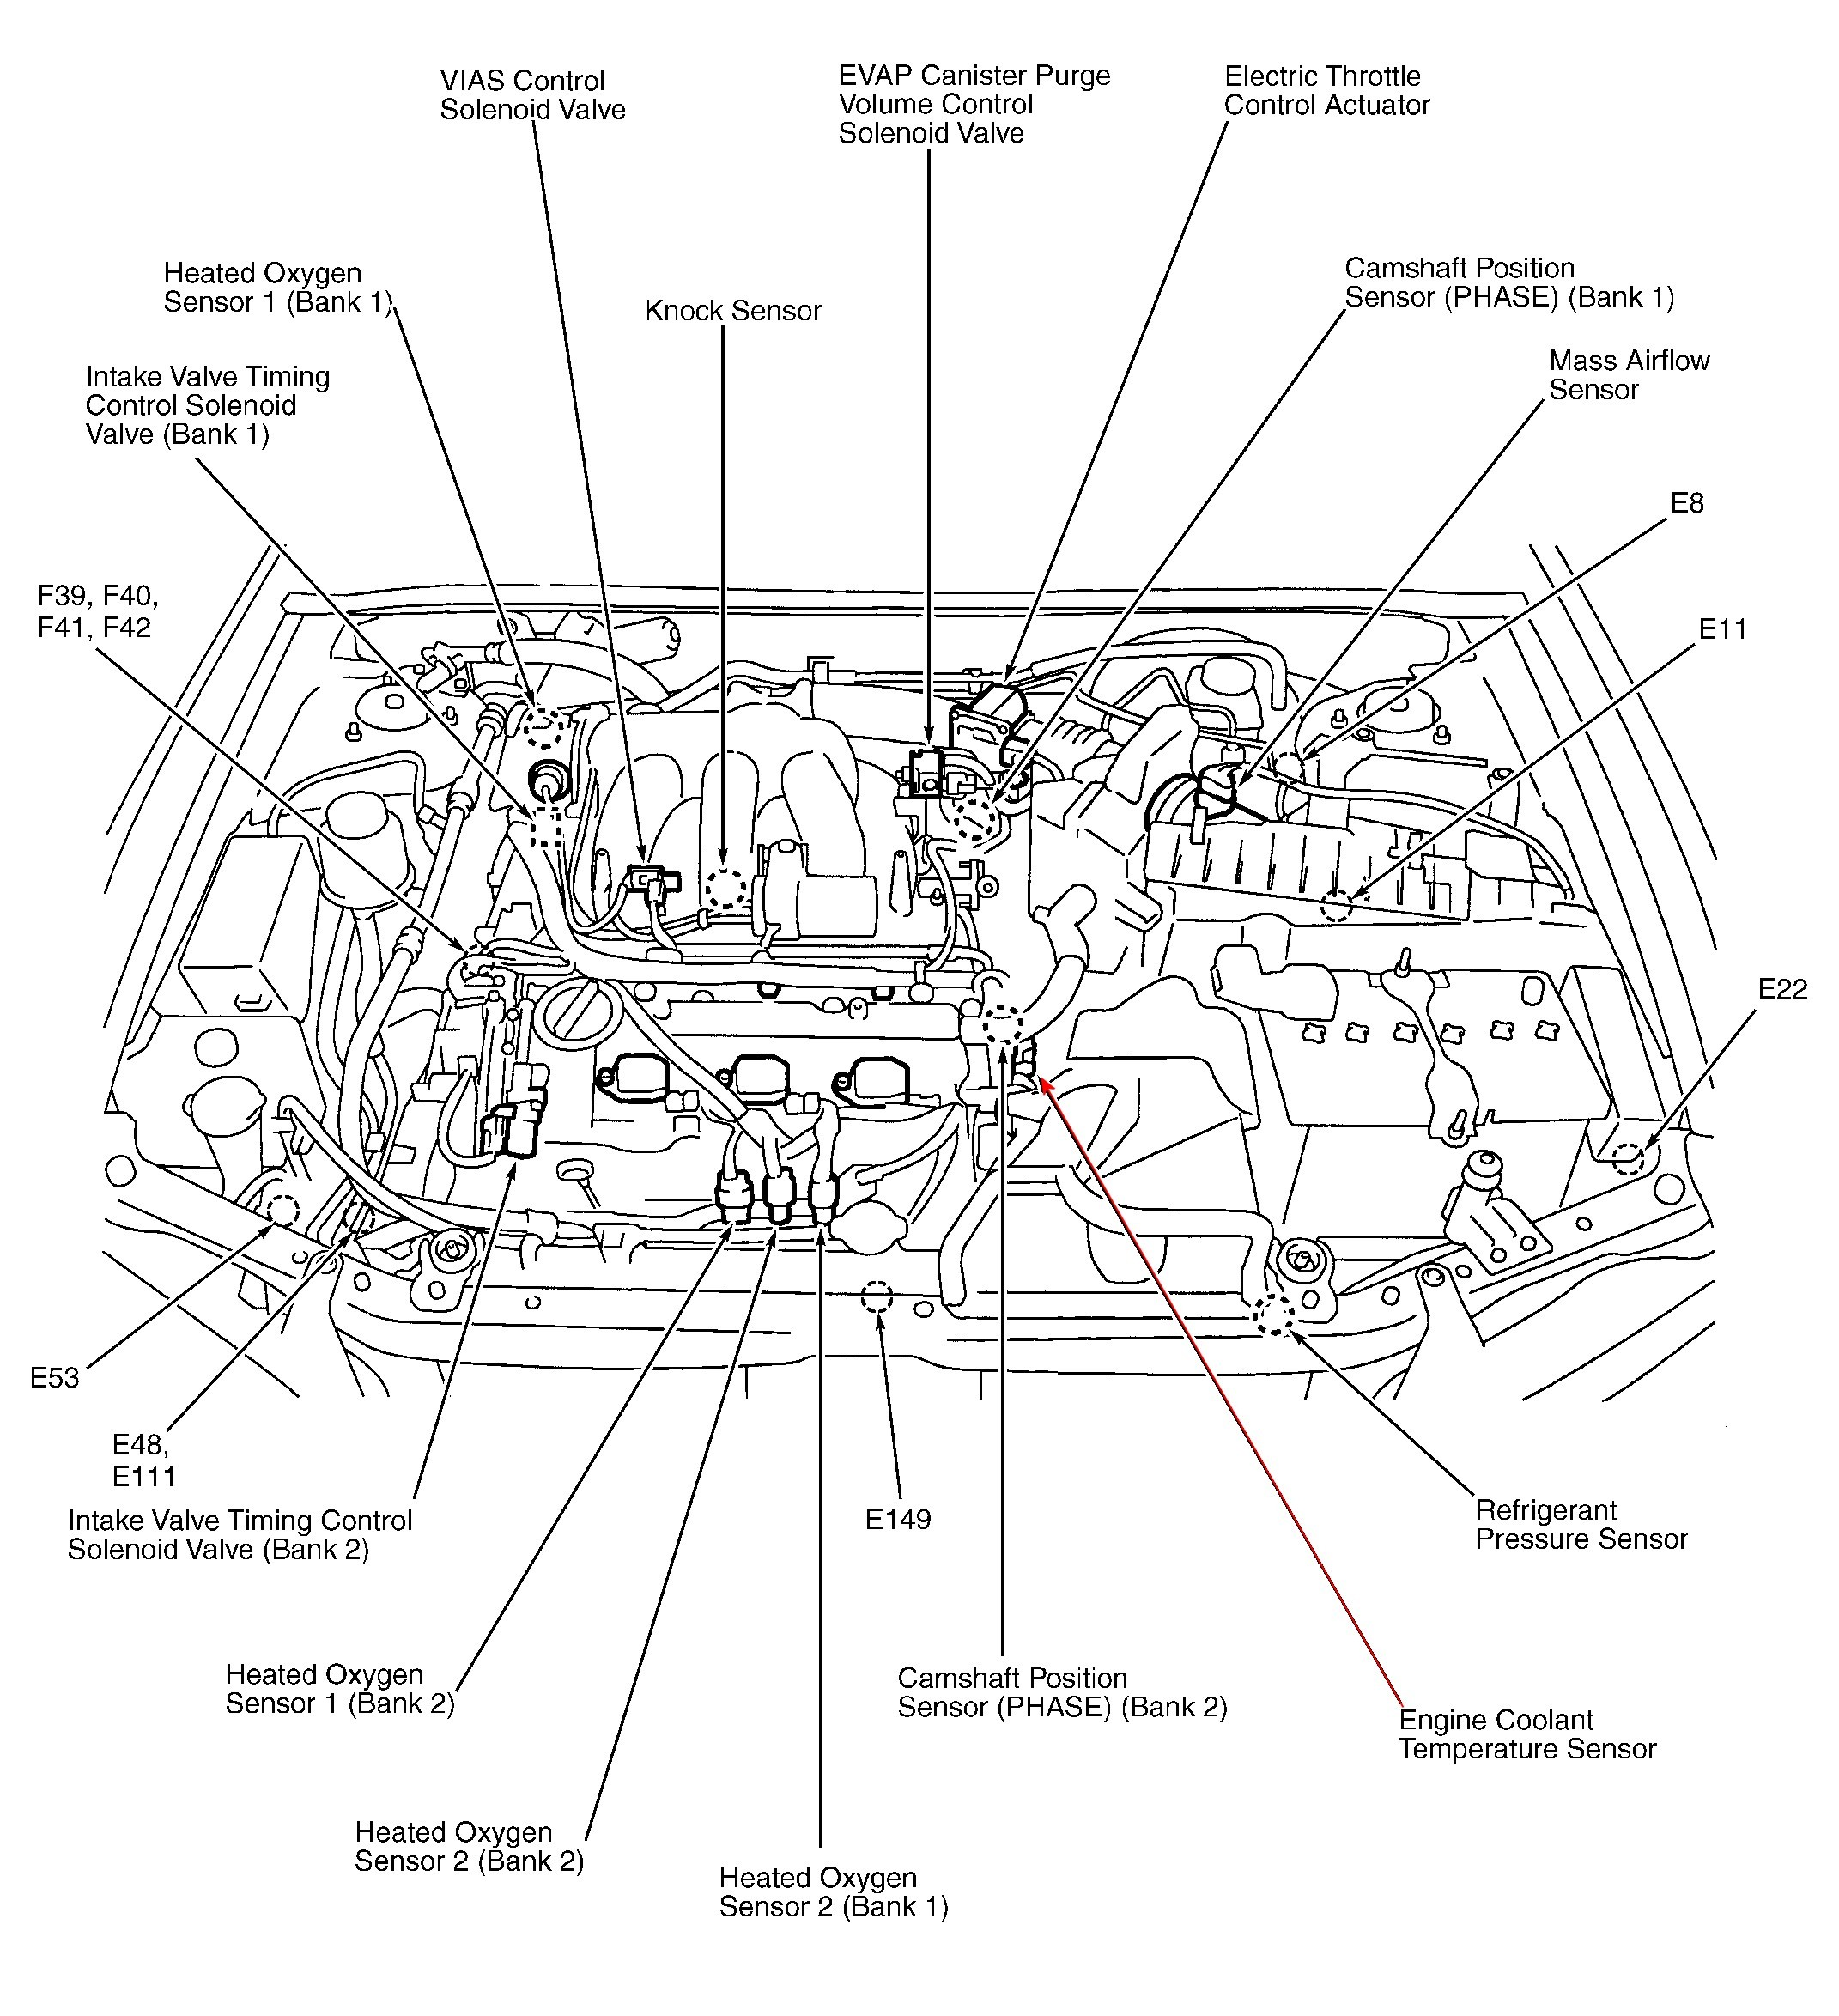 Car Parts Labeled Diagram Exterior Car Parts Diagram 242